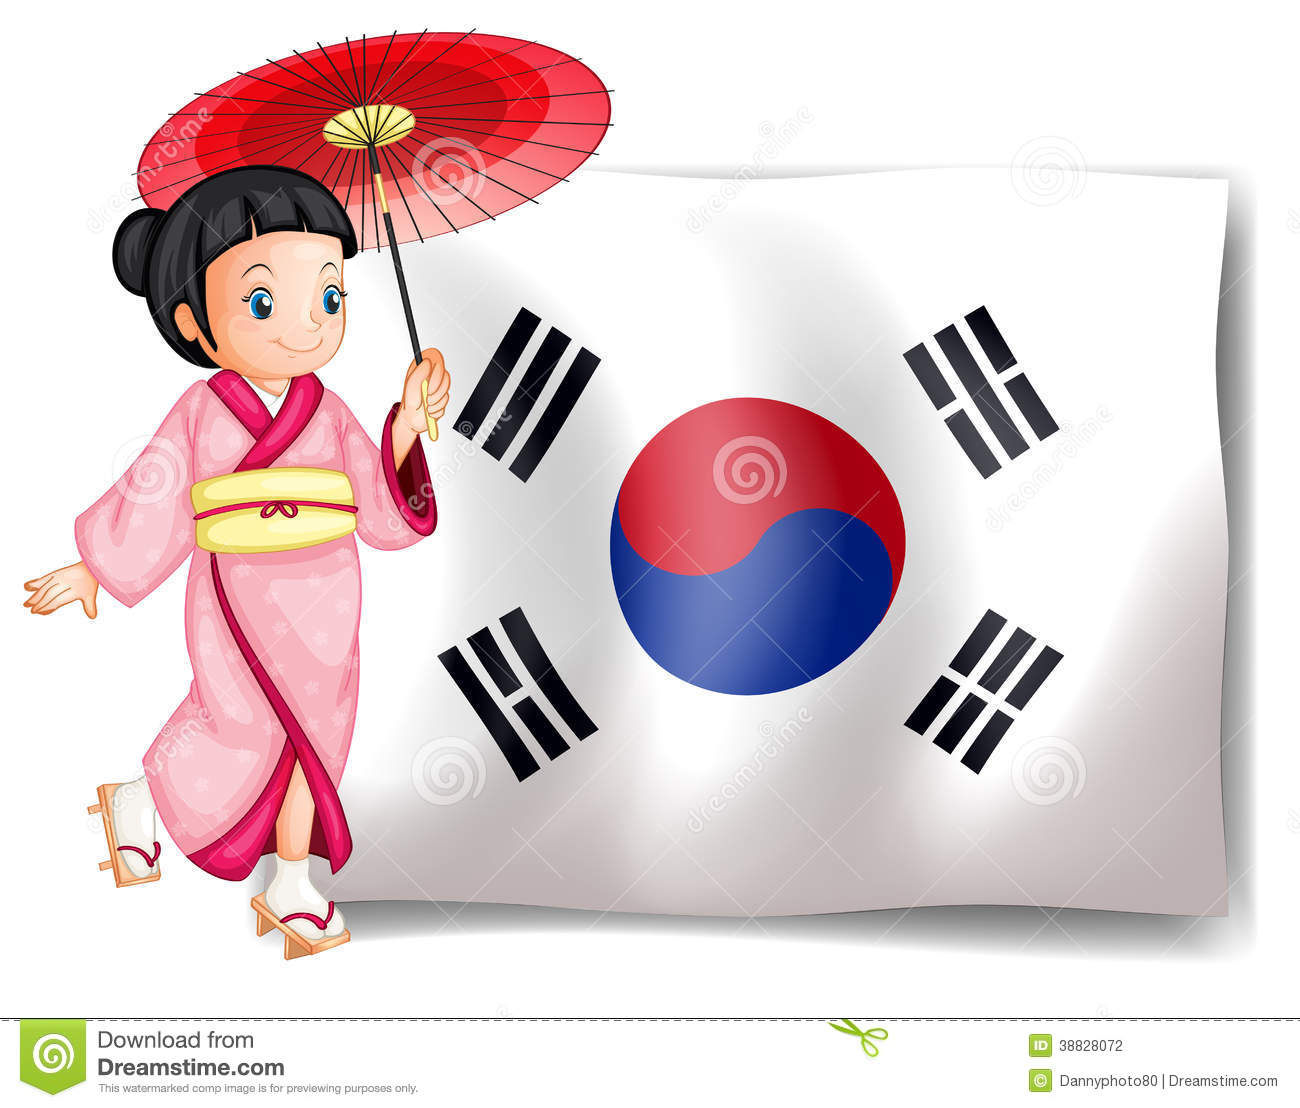 Korean clipart free picture library library Korean Clip Art Free | Clipart Panda - Free Clipart Images picture library library